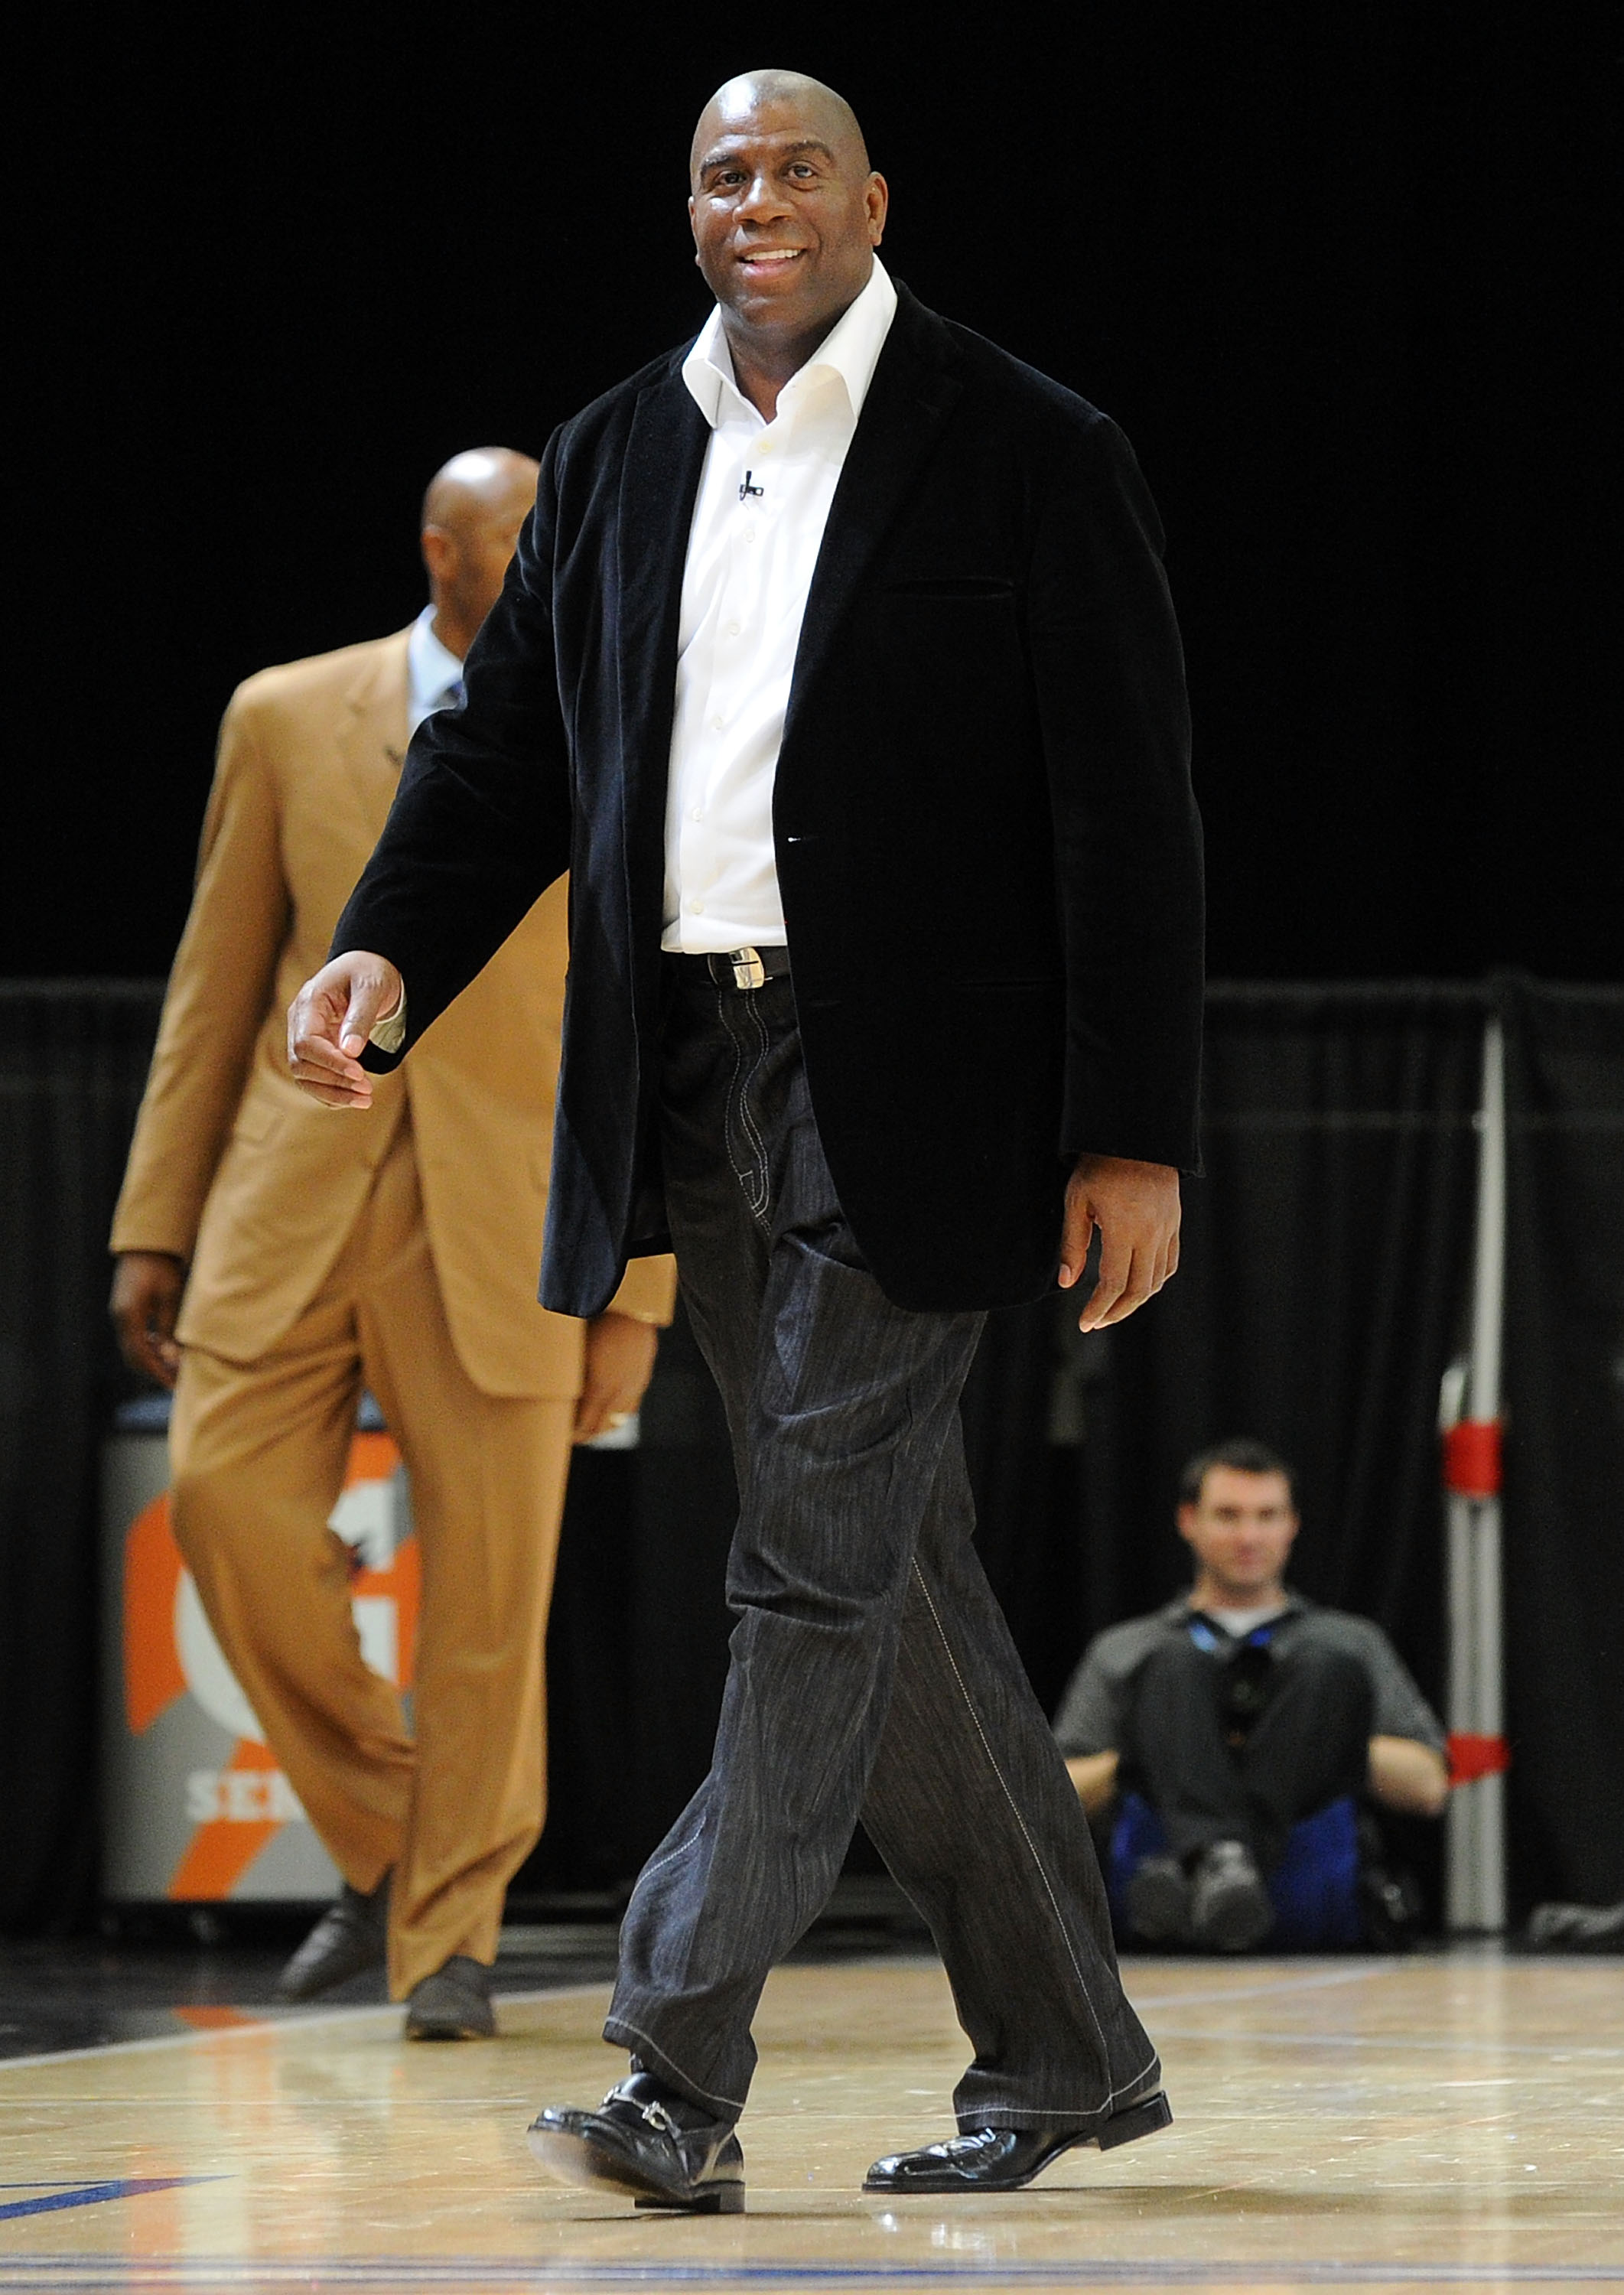 DALLAS - FEBRUARY 12:  NBA player Magic Johnson during the NBA All-Star celebrity game presented by Final Fantasy XIII held at the Dallas Convention Center on February 12, 2010 in Dallas, Texas.  (Photo by Jason Merritt/Getty Images)